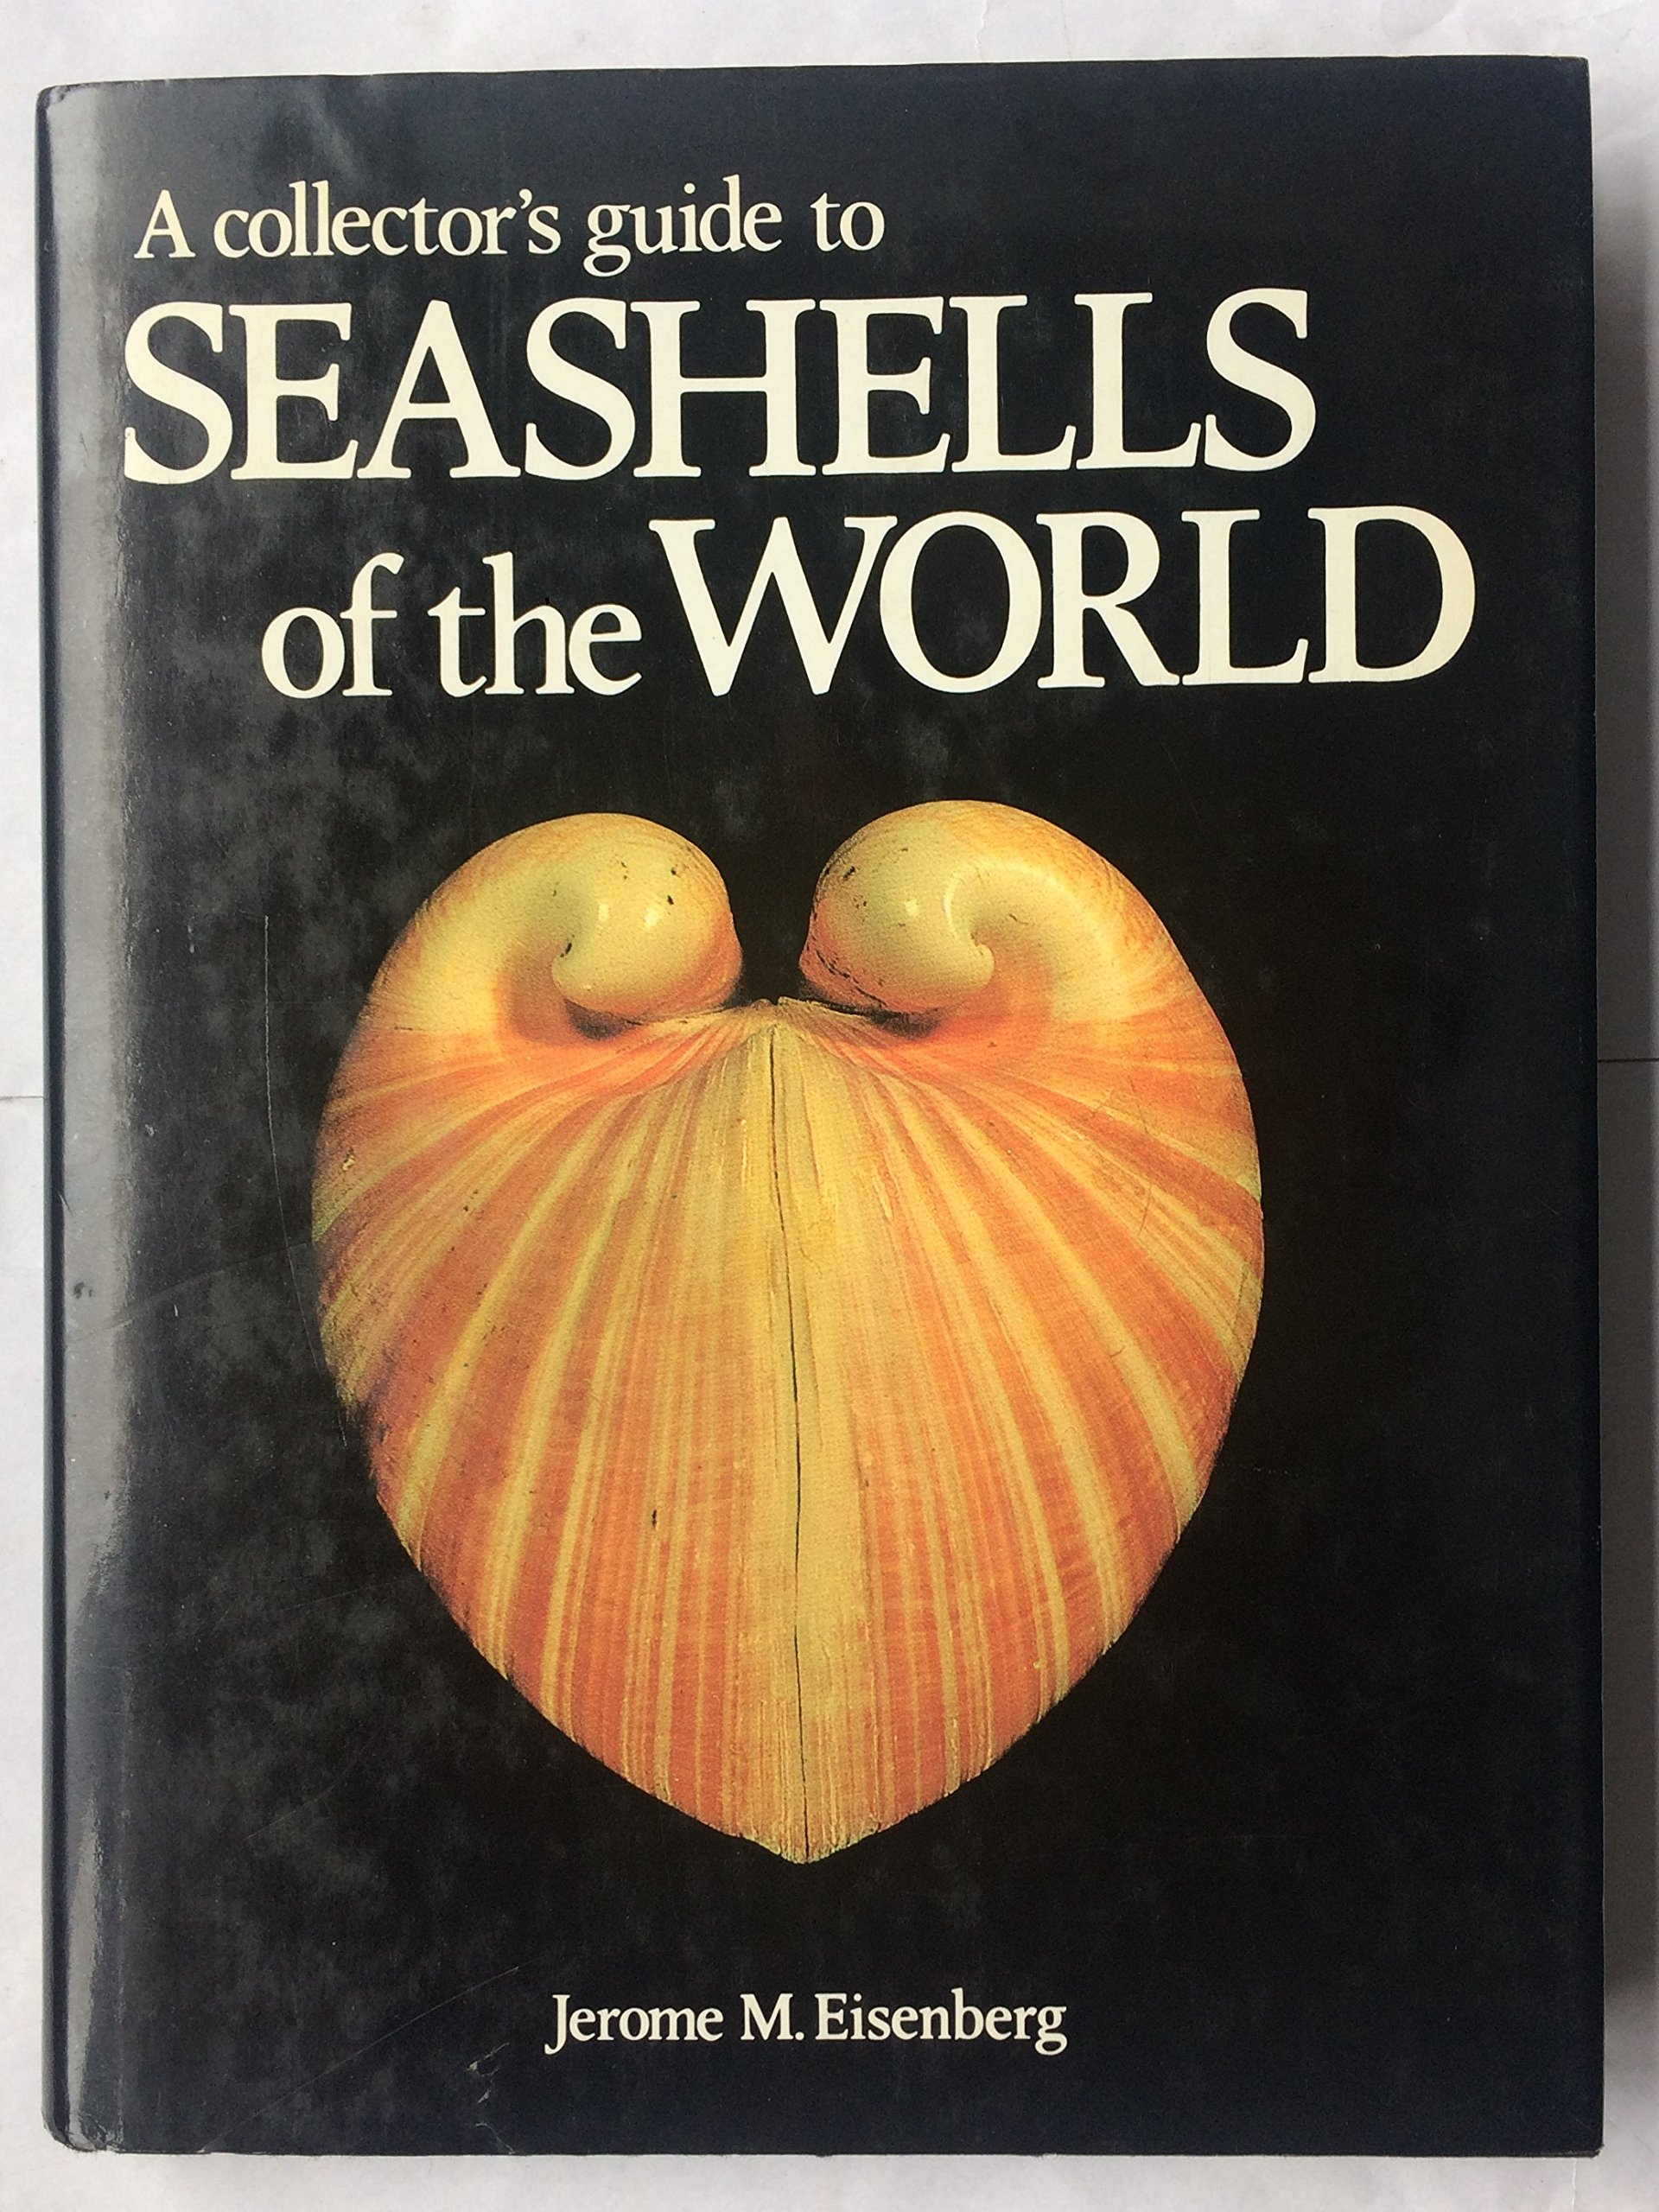 A Collector's Guide To Seashells Of The World: Jerome M Eisenberg, Jr  William E Old: 9780070191402: Amazon: Books